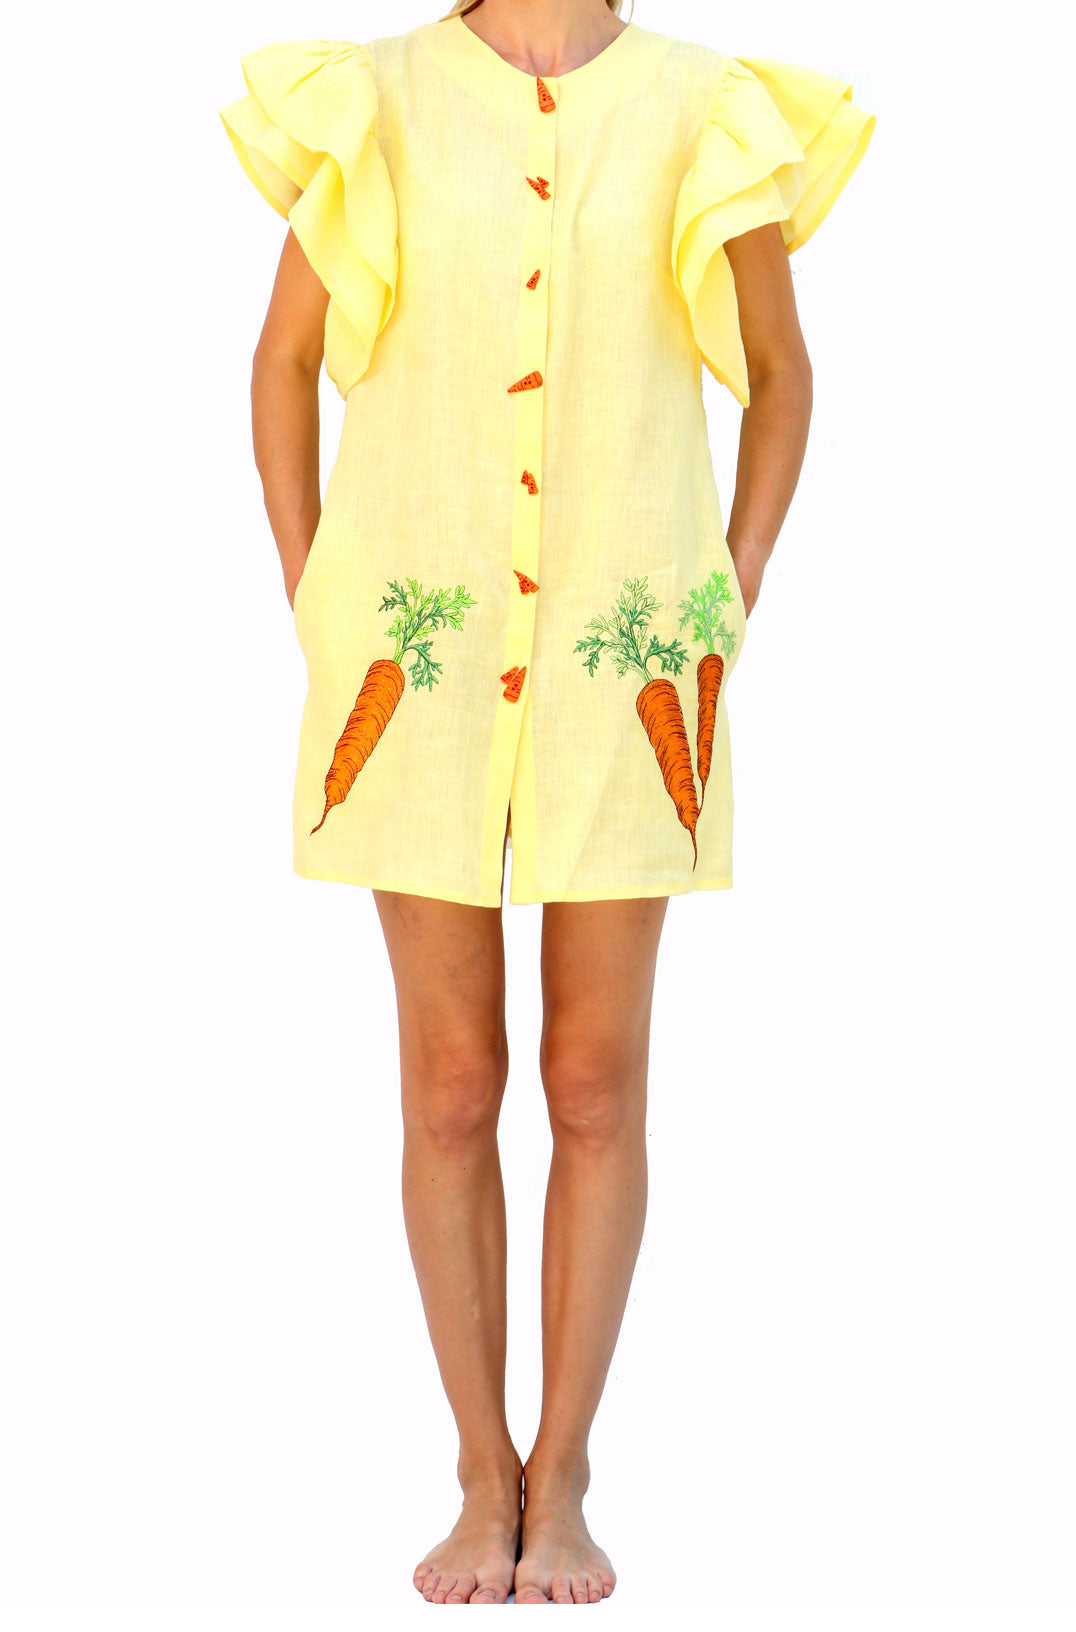 Fanm Mon CARROT Yellow Linen Food Veggies Embroidery Vyshyvanka MINI Dress